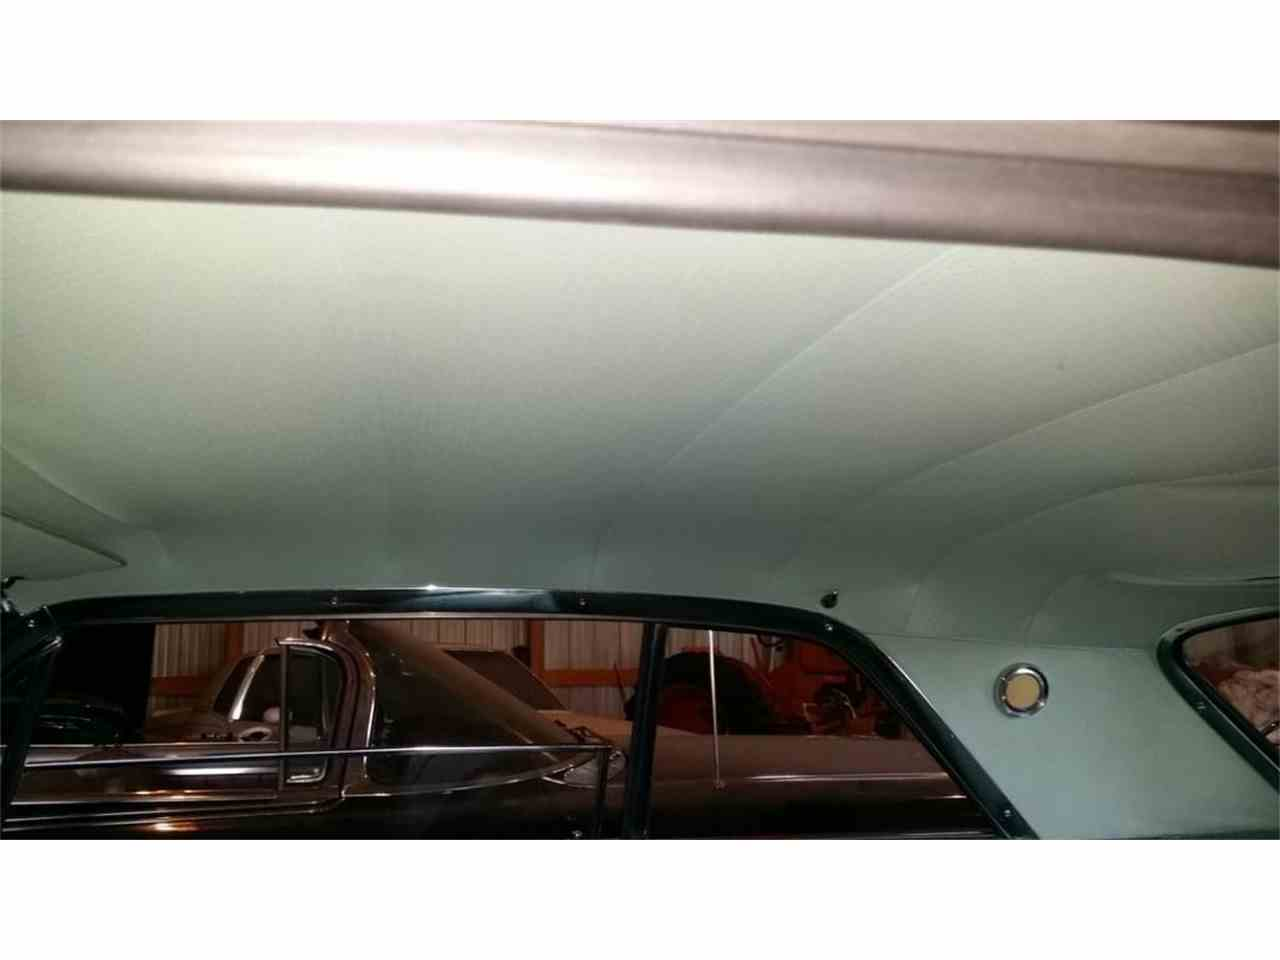 Large Picture of '64 IMPALA 2 DOOR HARDTOP located in Minnesota - $21,500.00 Offered by Classic Rides and Rods - J1JM